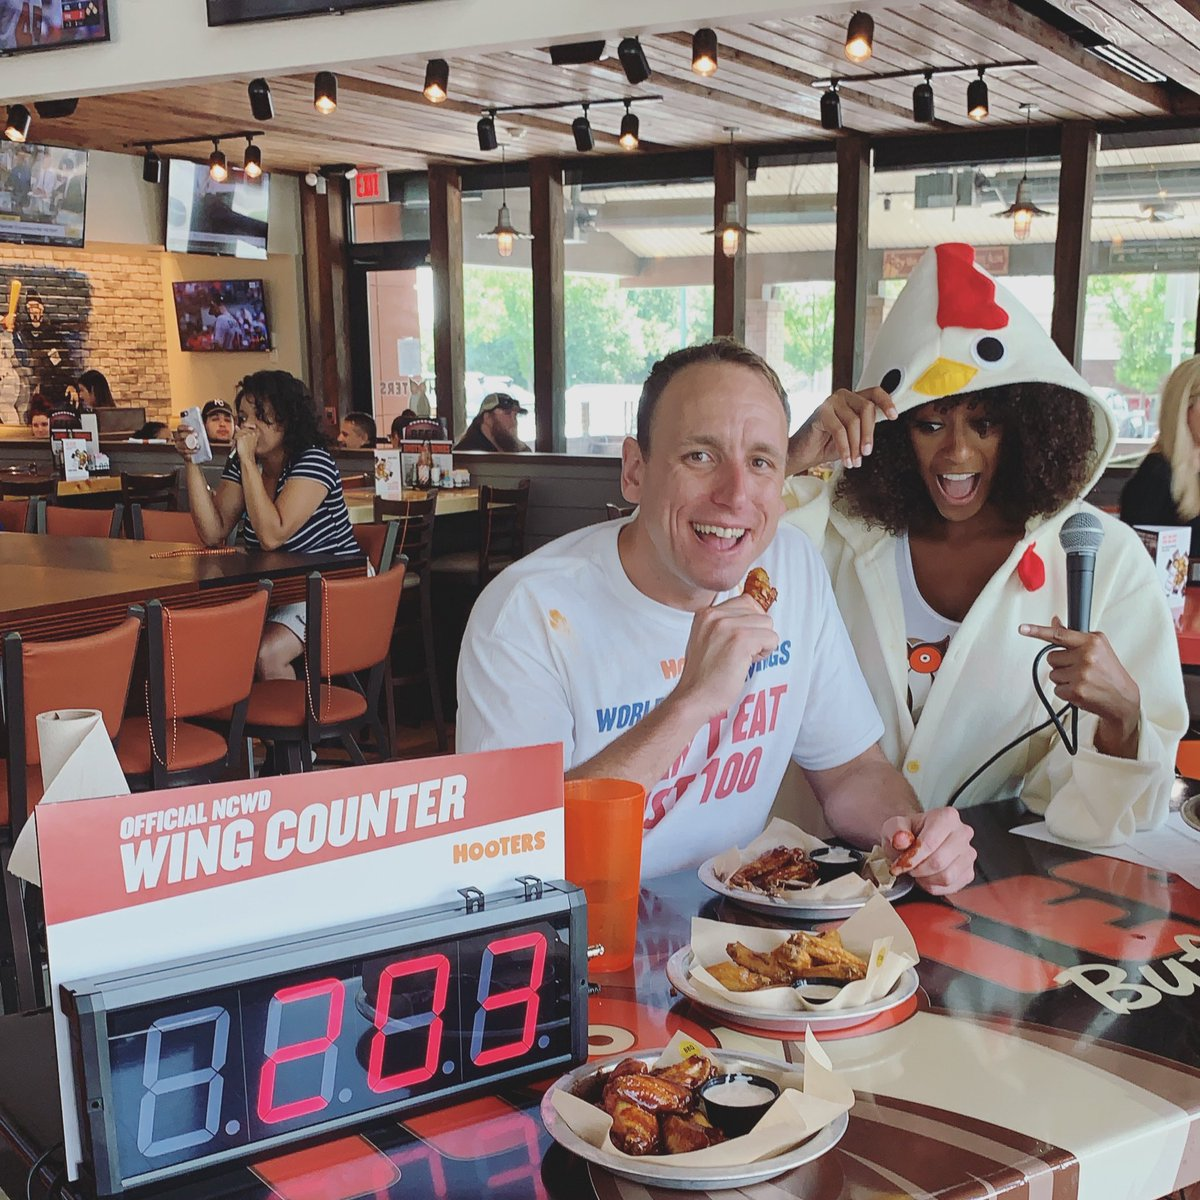 Hot dog king Joey Chestnut devours 413 Hooters wings for National Chicken Wing Day